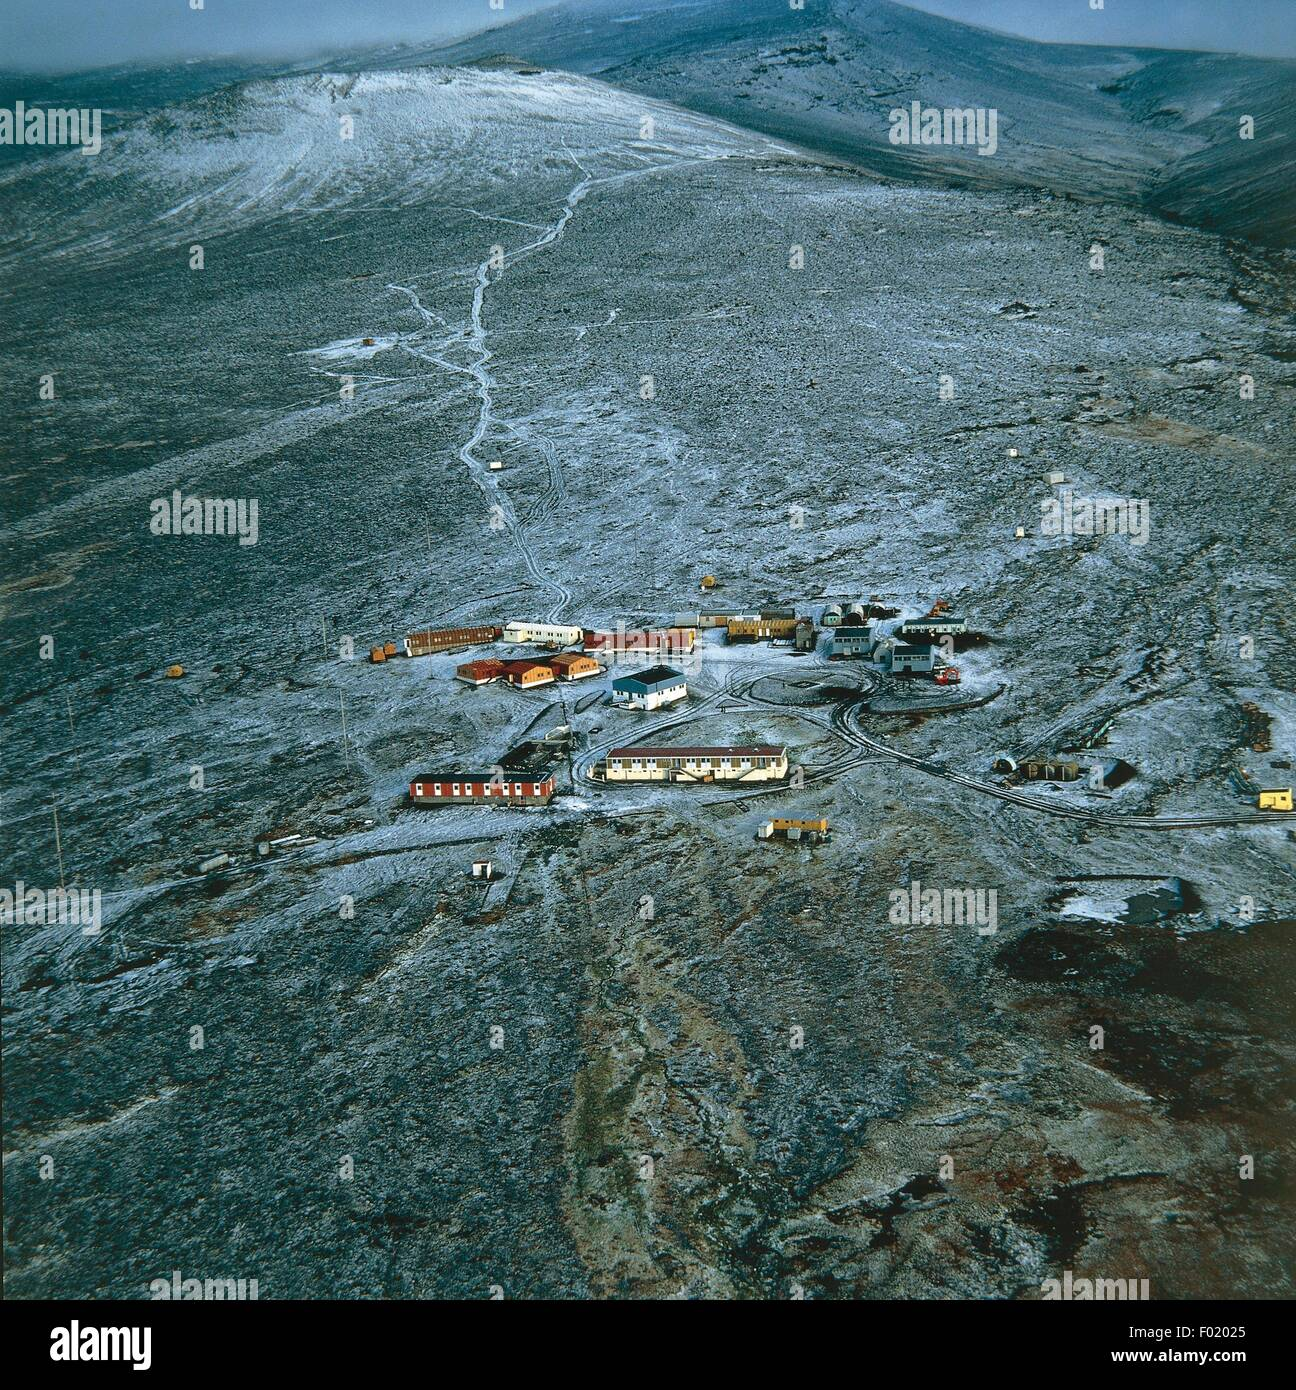 Aerial view of scientific research base Alfred-Faure, Ile de la Possession - French Southern and Antarctic Lands - Stock Image